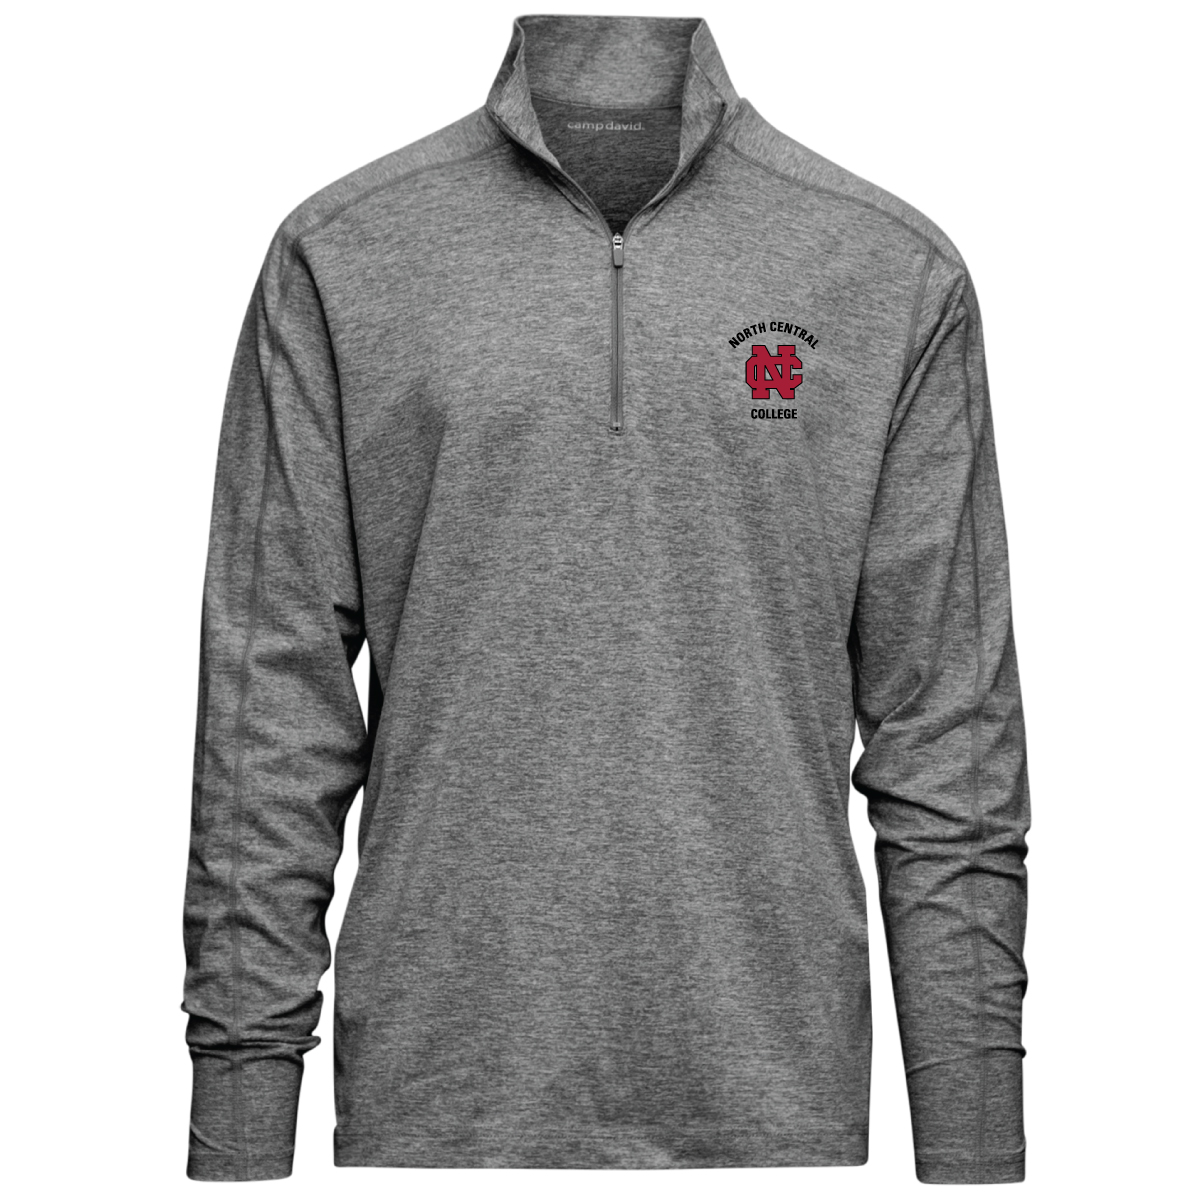 Image for the Interval 1/4-Zip by Camp David - Clearance product